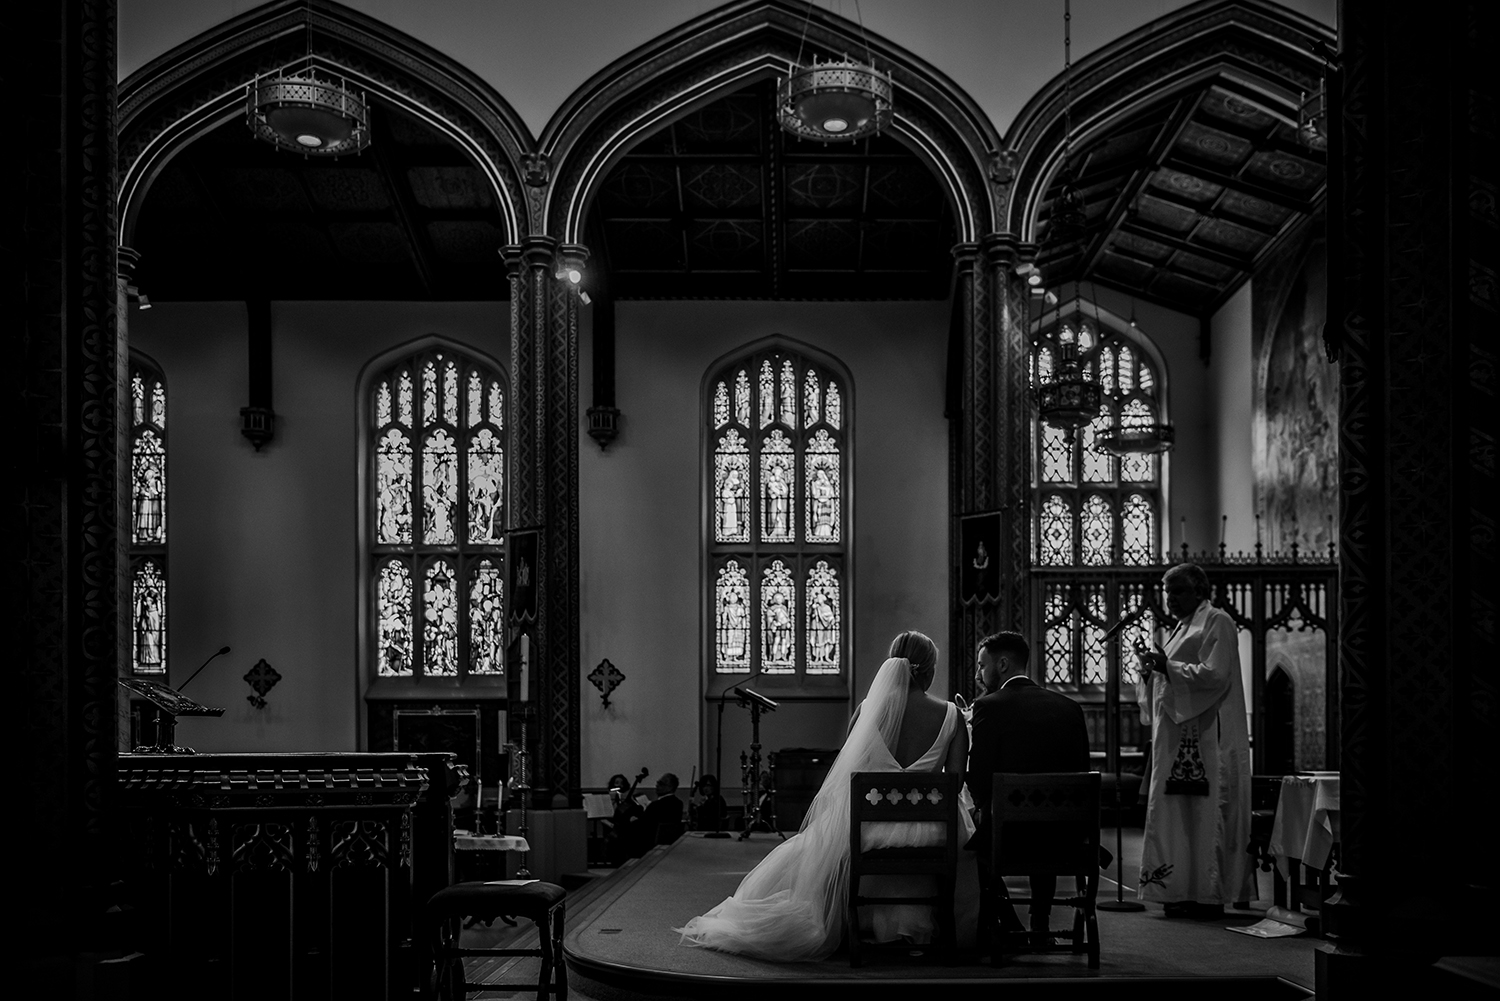 bw photo taken from behind the bride and groom in church